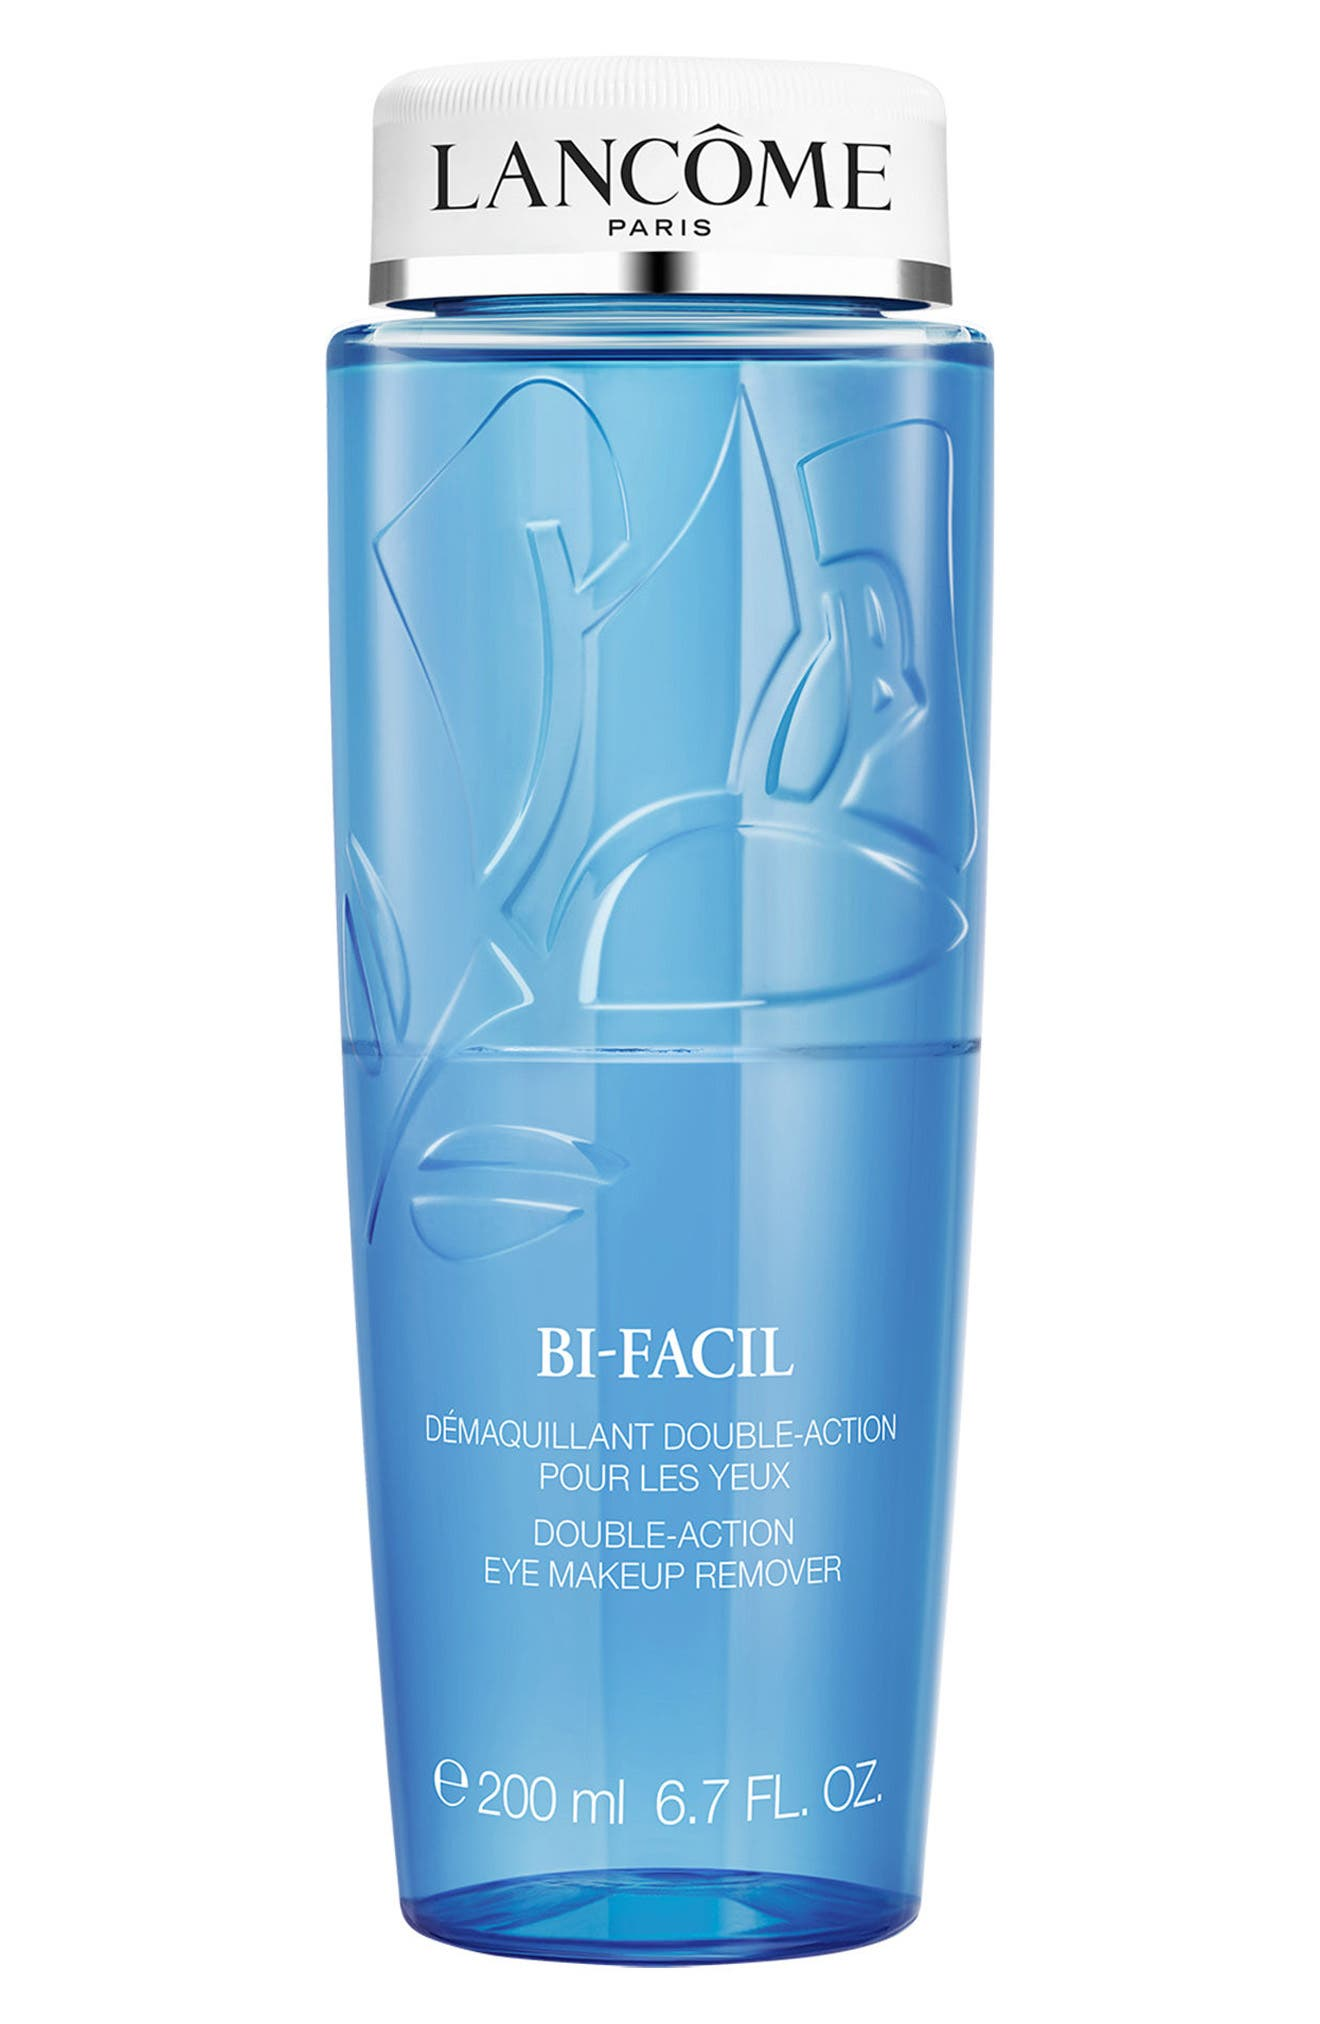 Alternate Image 1 Selected - Lancôme Bi-Facil Double-Action Eye Makeup Remover